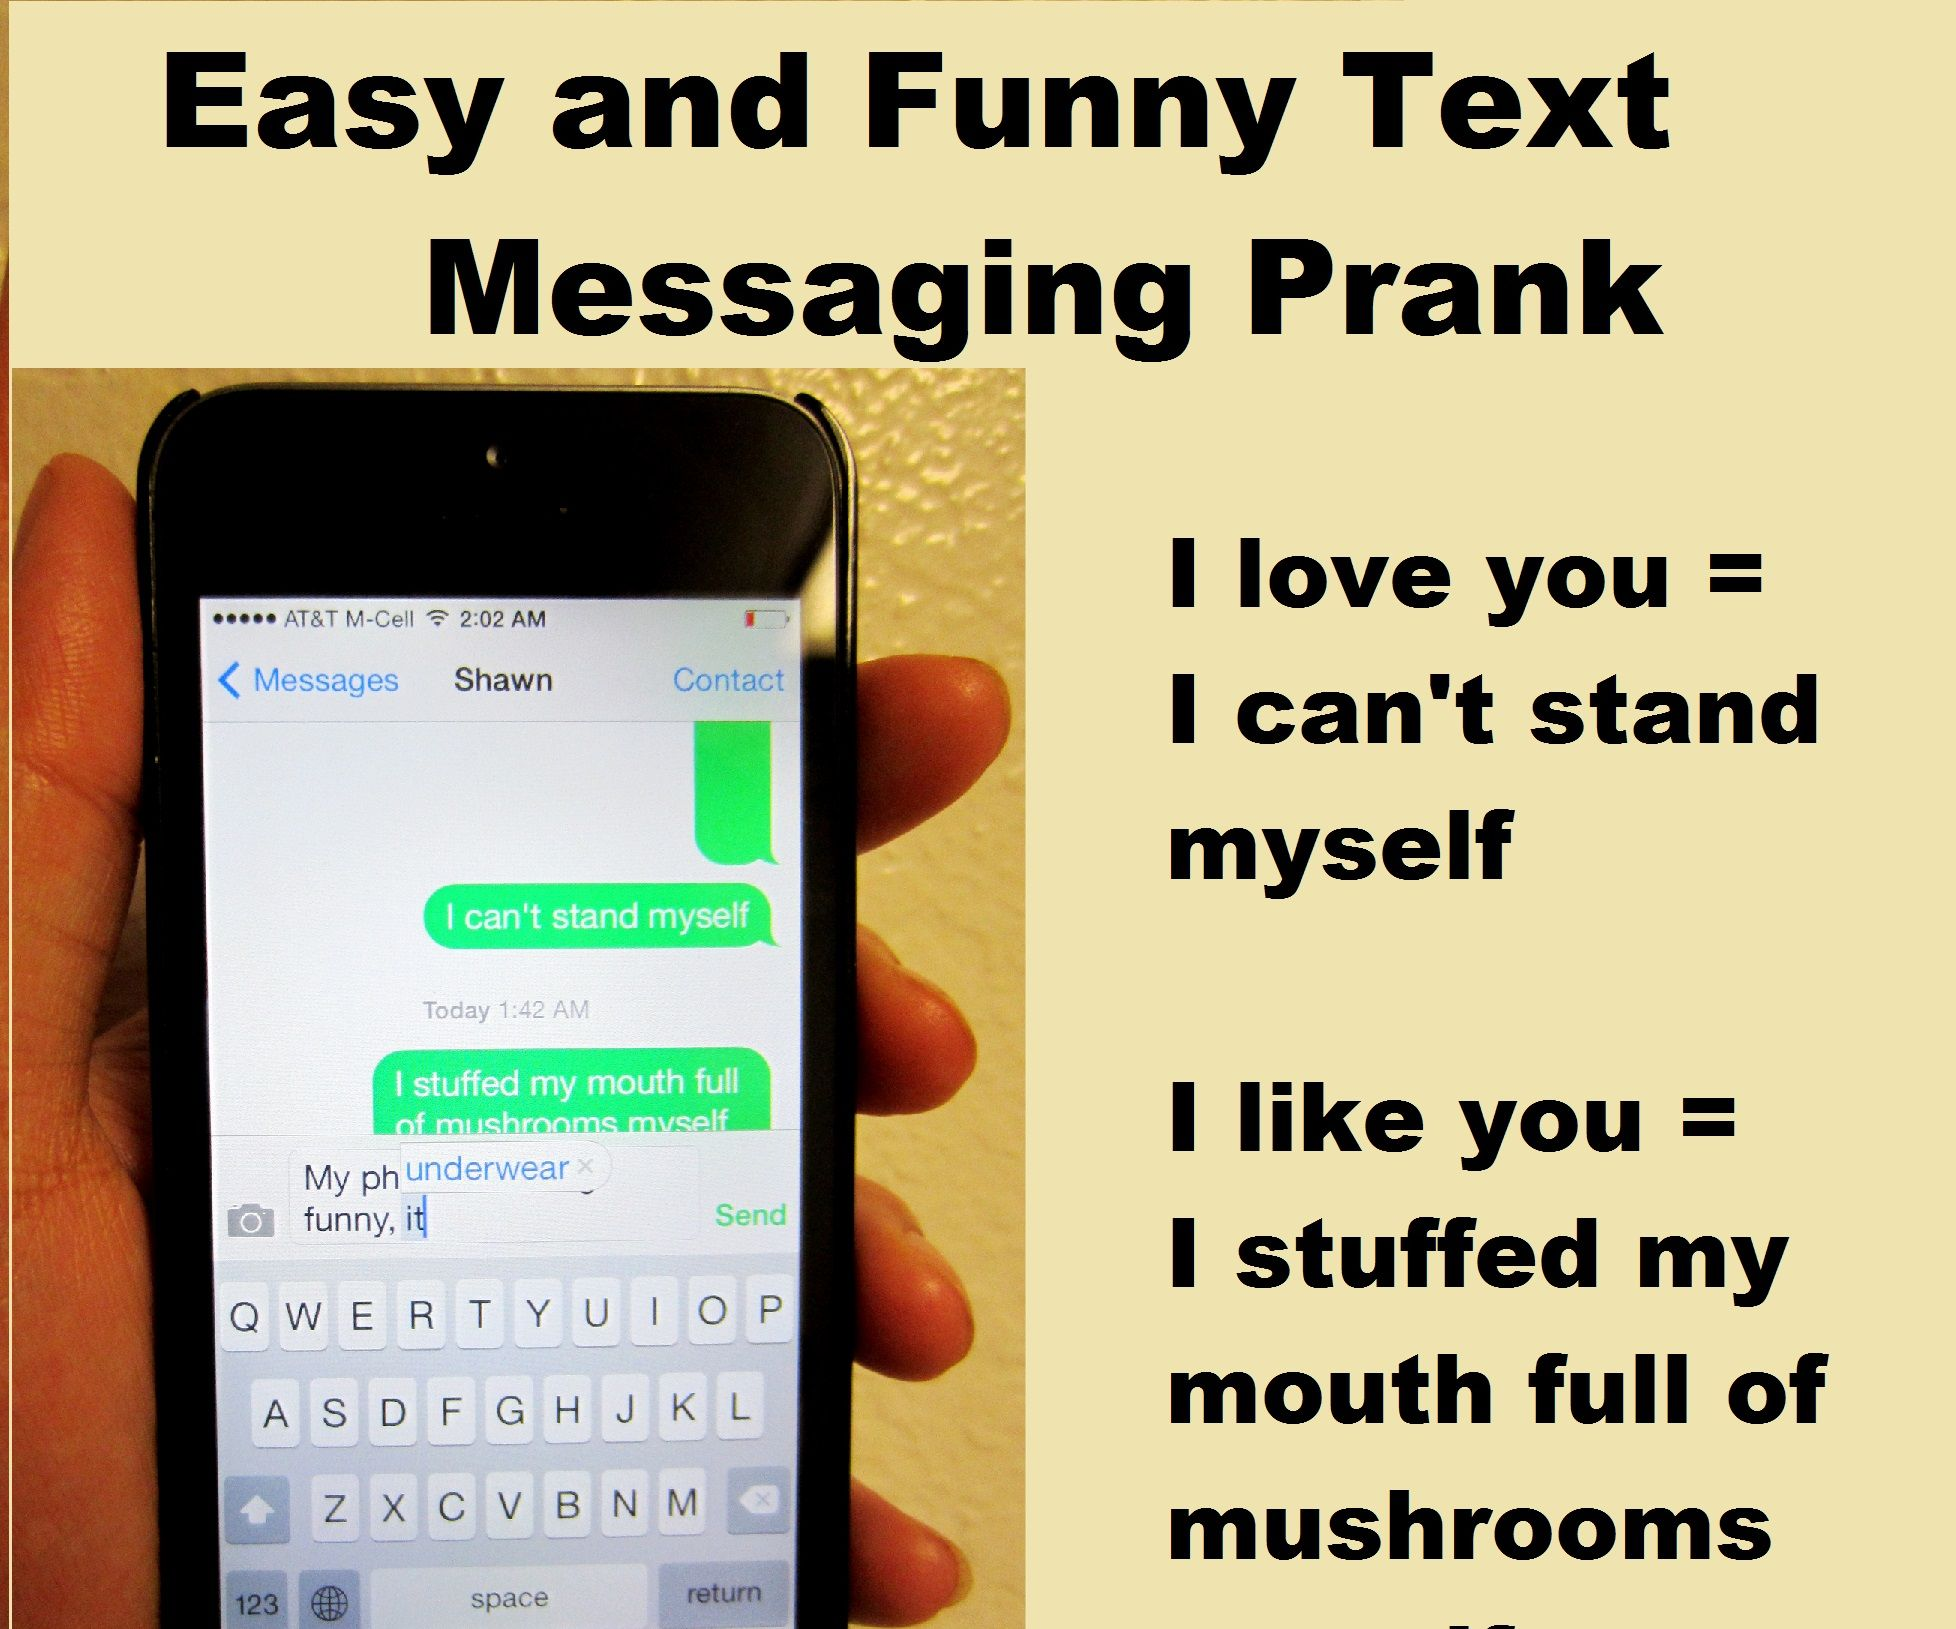 Easy and Funny Text Messaging Prank: Loads of lol